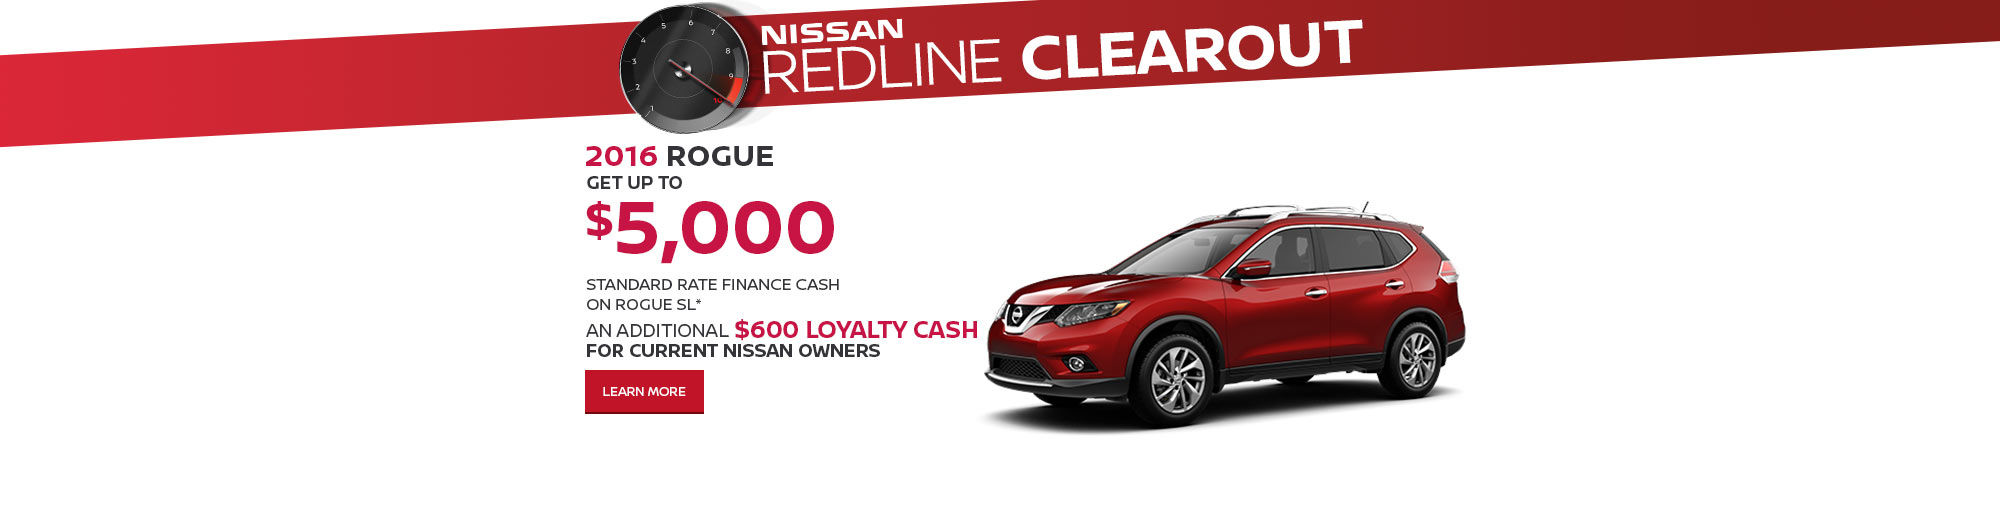 Redline Clearout Promo September-Rogue